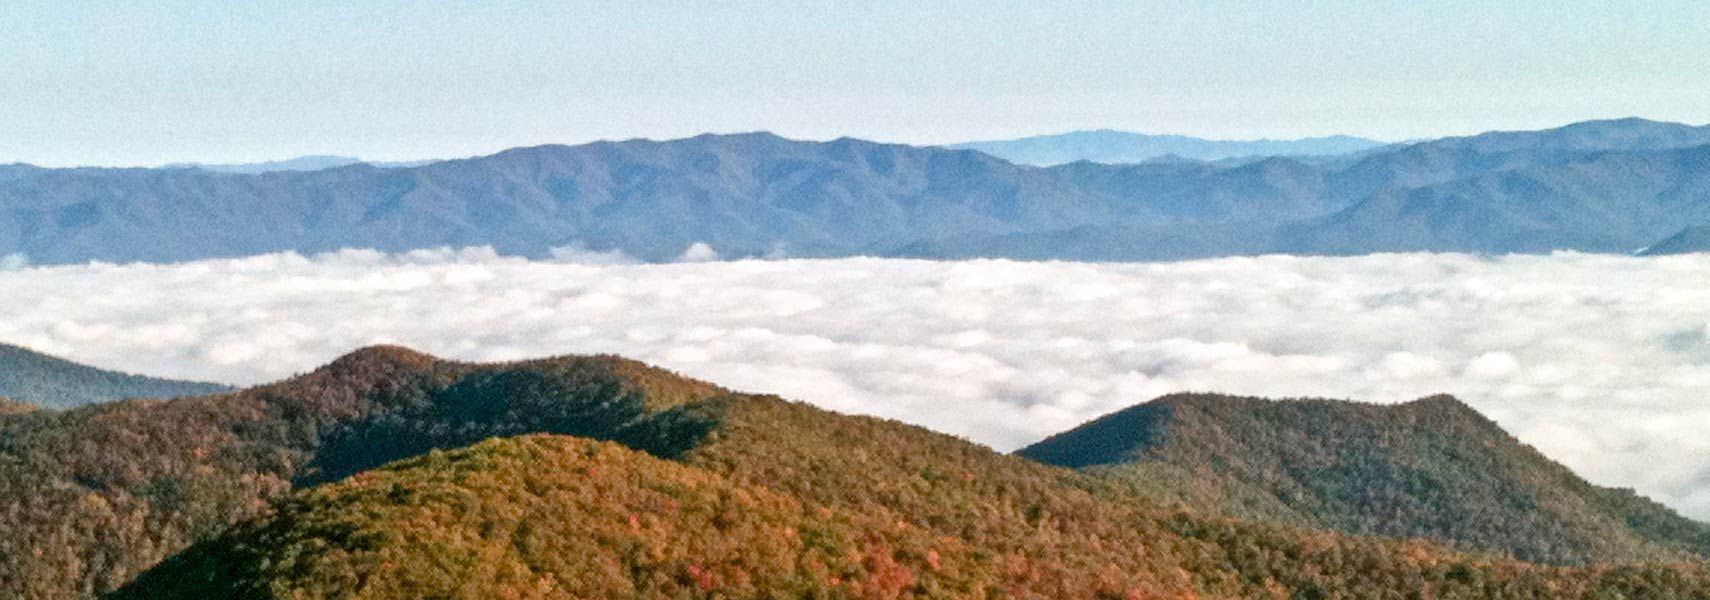 Chattahoochee National Forest, view from Brasstown Bald Mountain